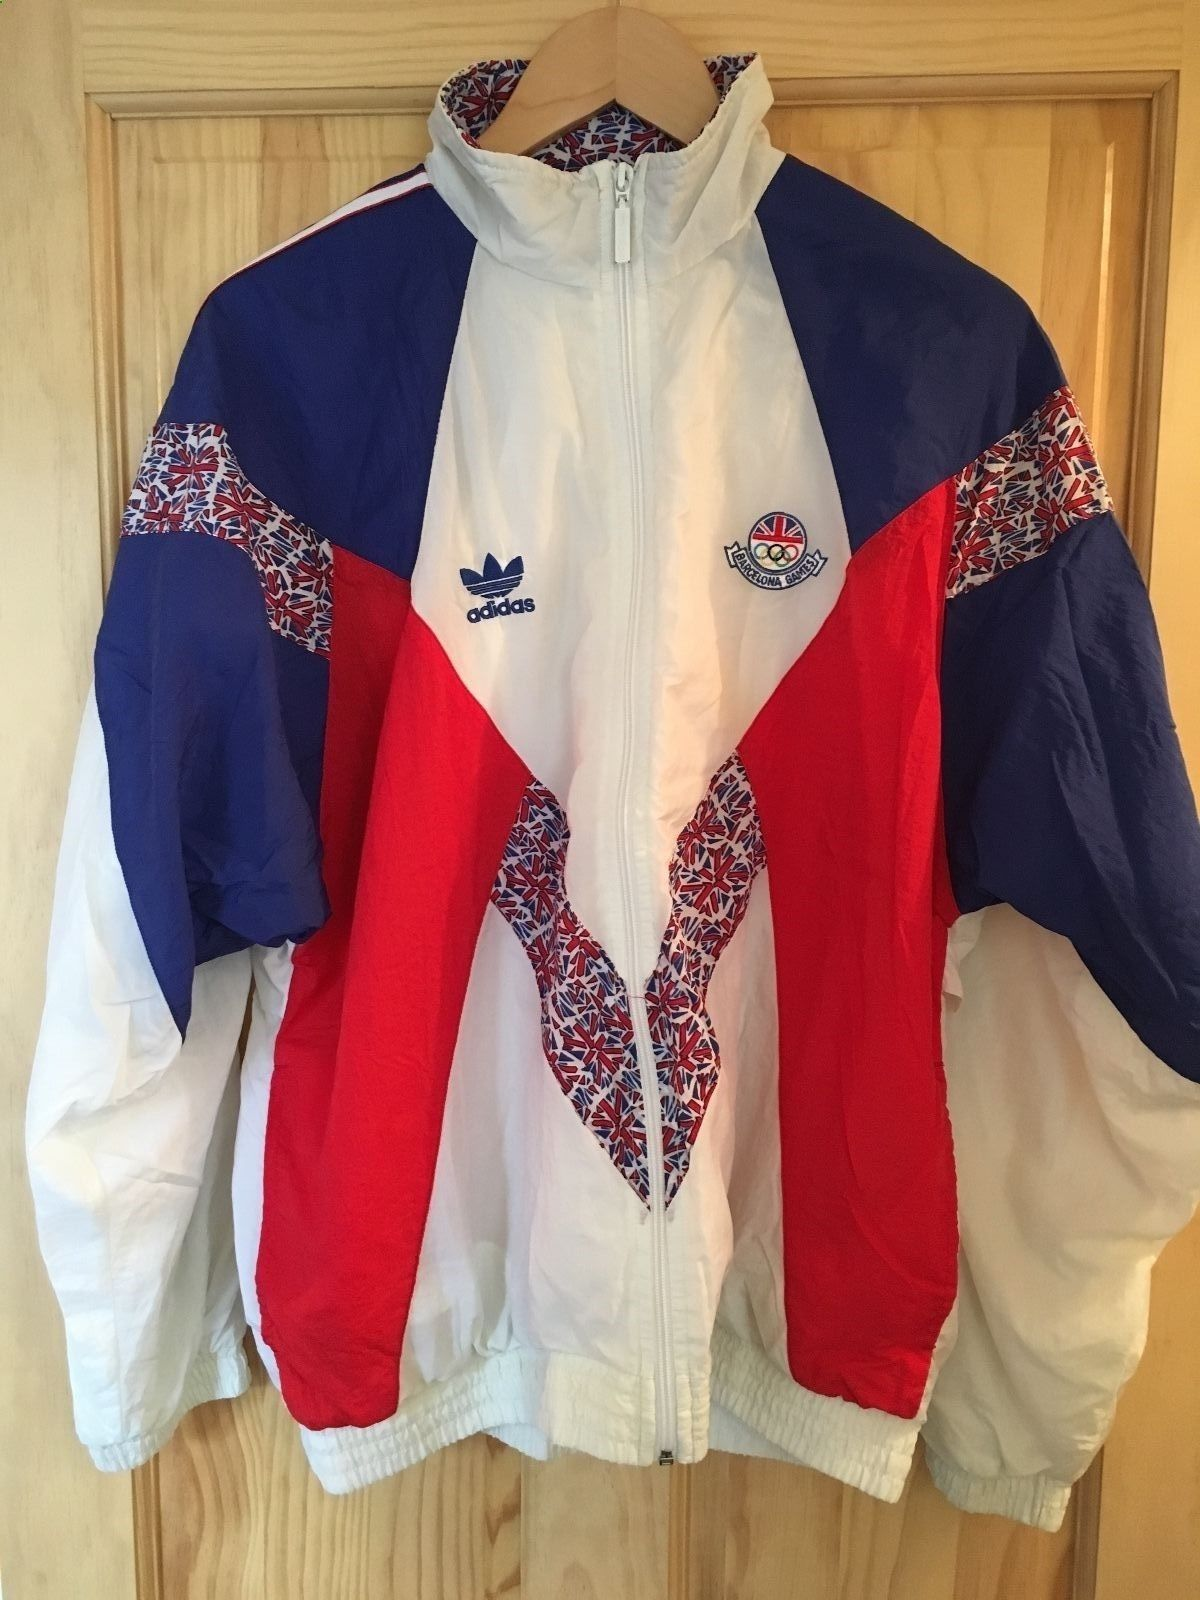 abaea59bdb6e Vintage ADIDAS Team GB Barcelona 92 Olympics......(Deadstock, 90s, British,  UK)   Clothing, Shoes Accessories, Womens Clothing, Coats Jackets   eBay!